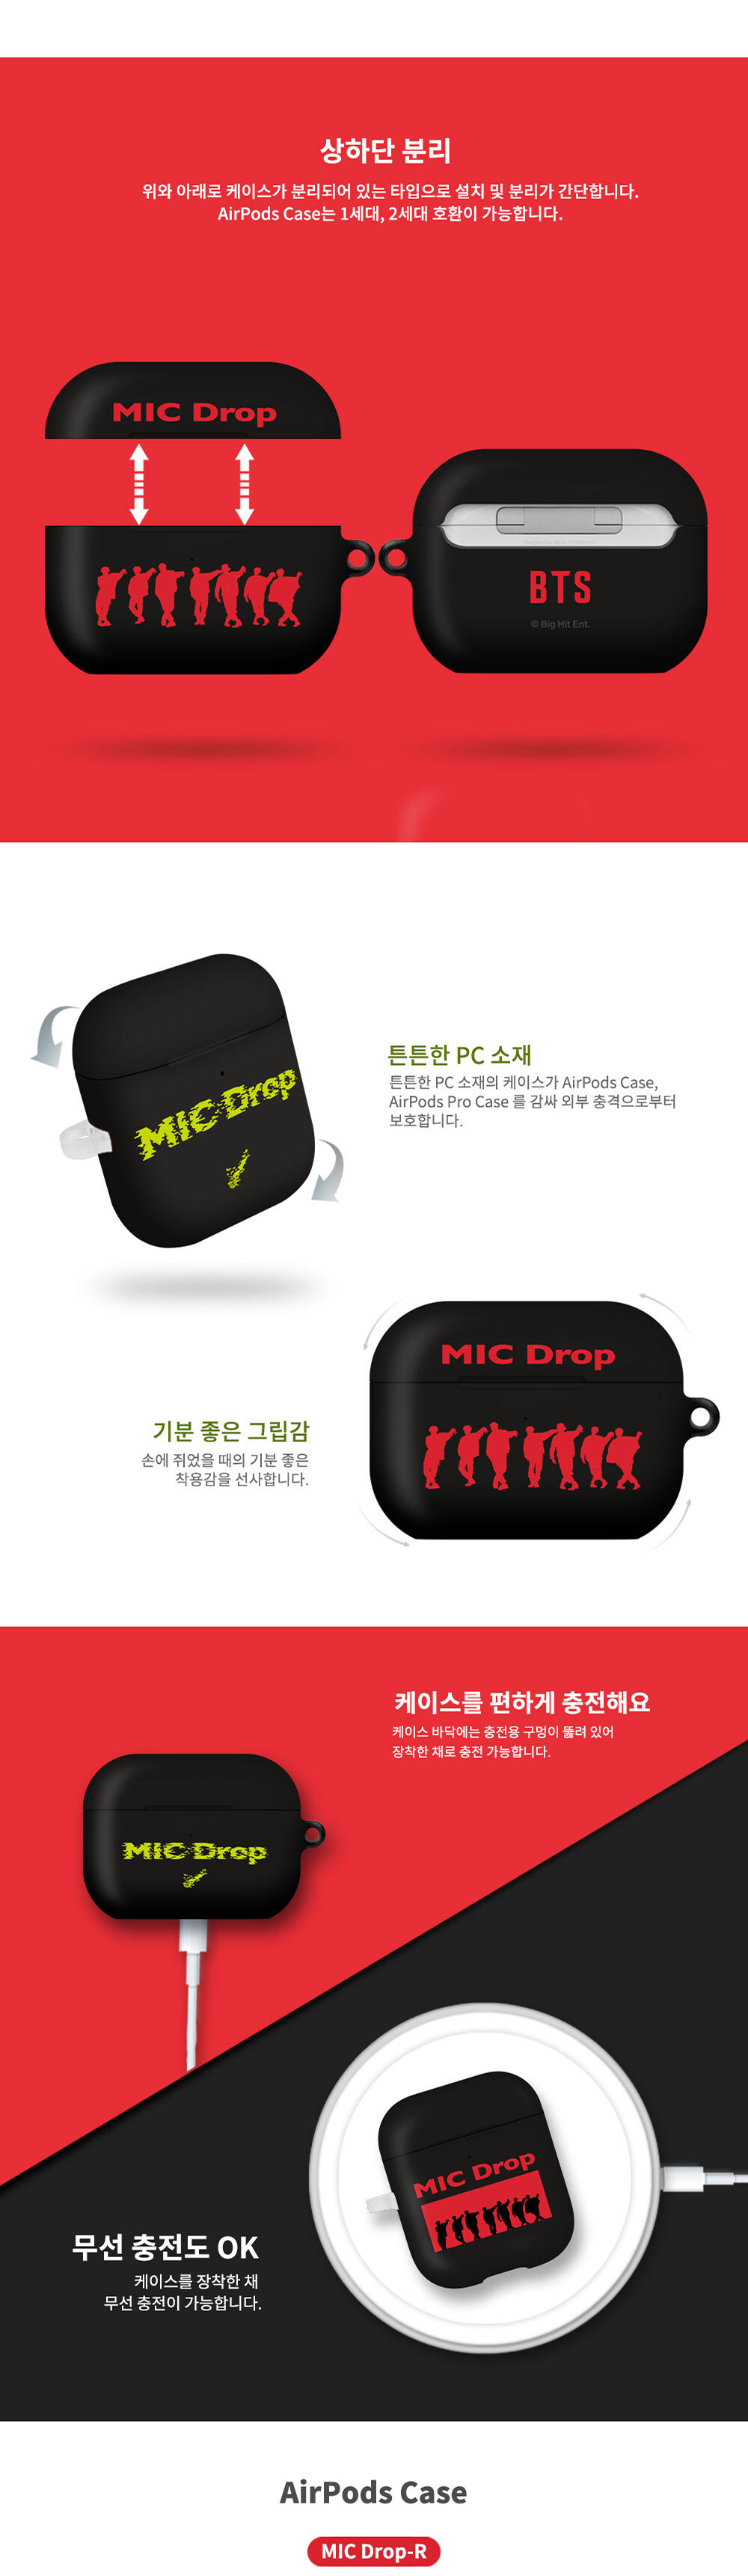 BTS MIC Drop Goods - Airpods / Airpods Pro Case